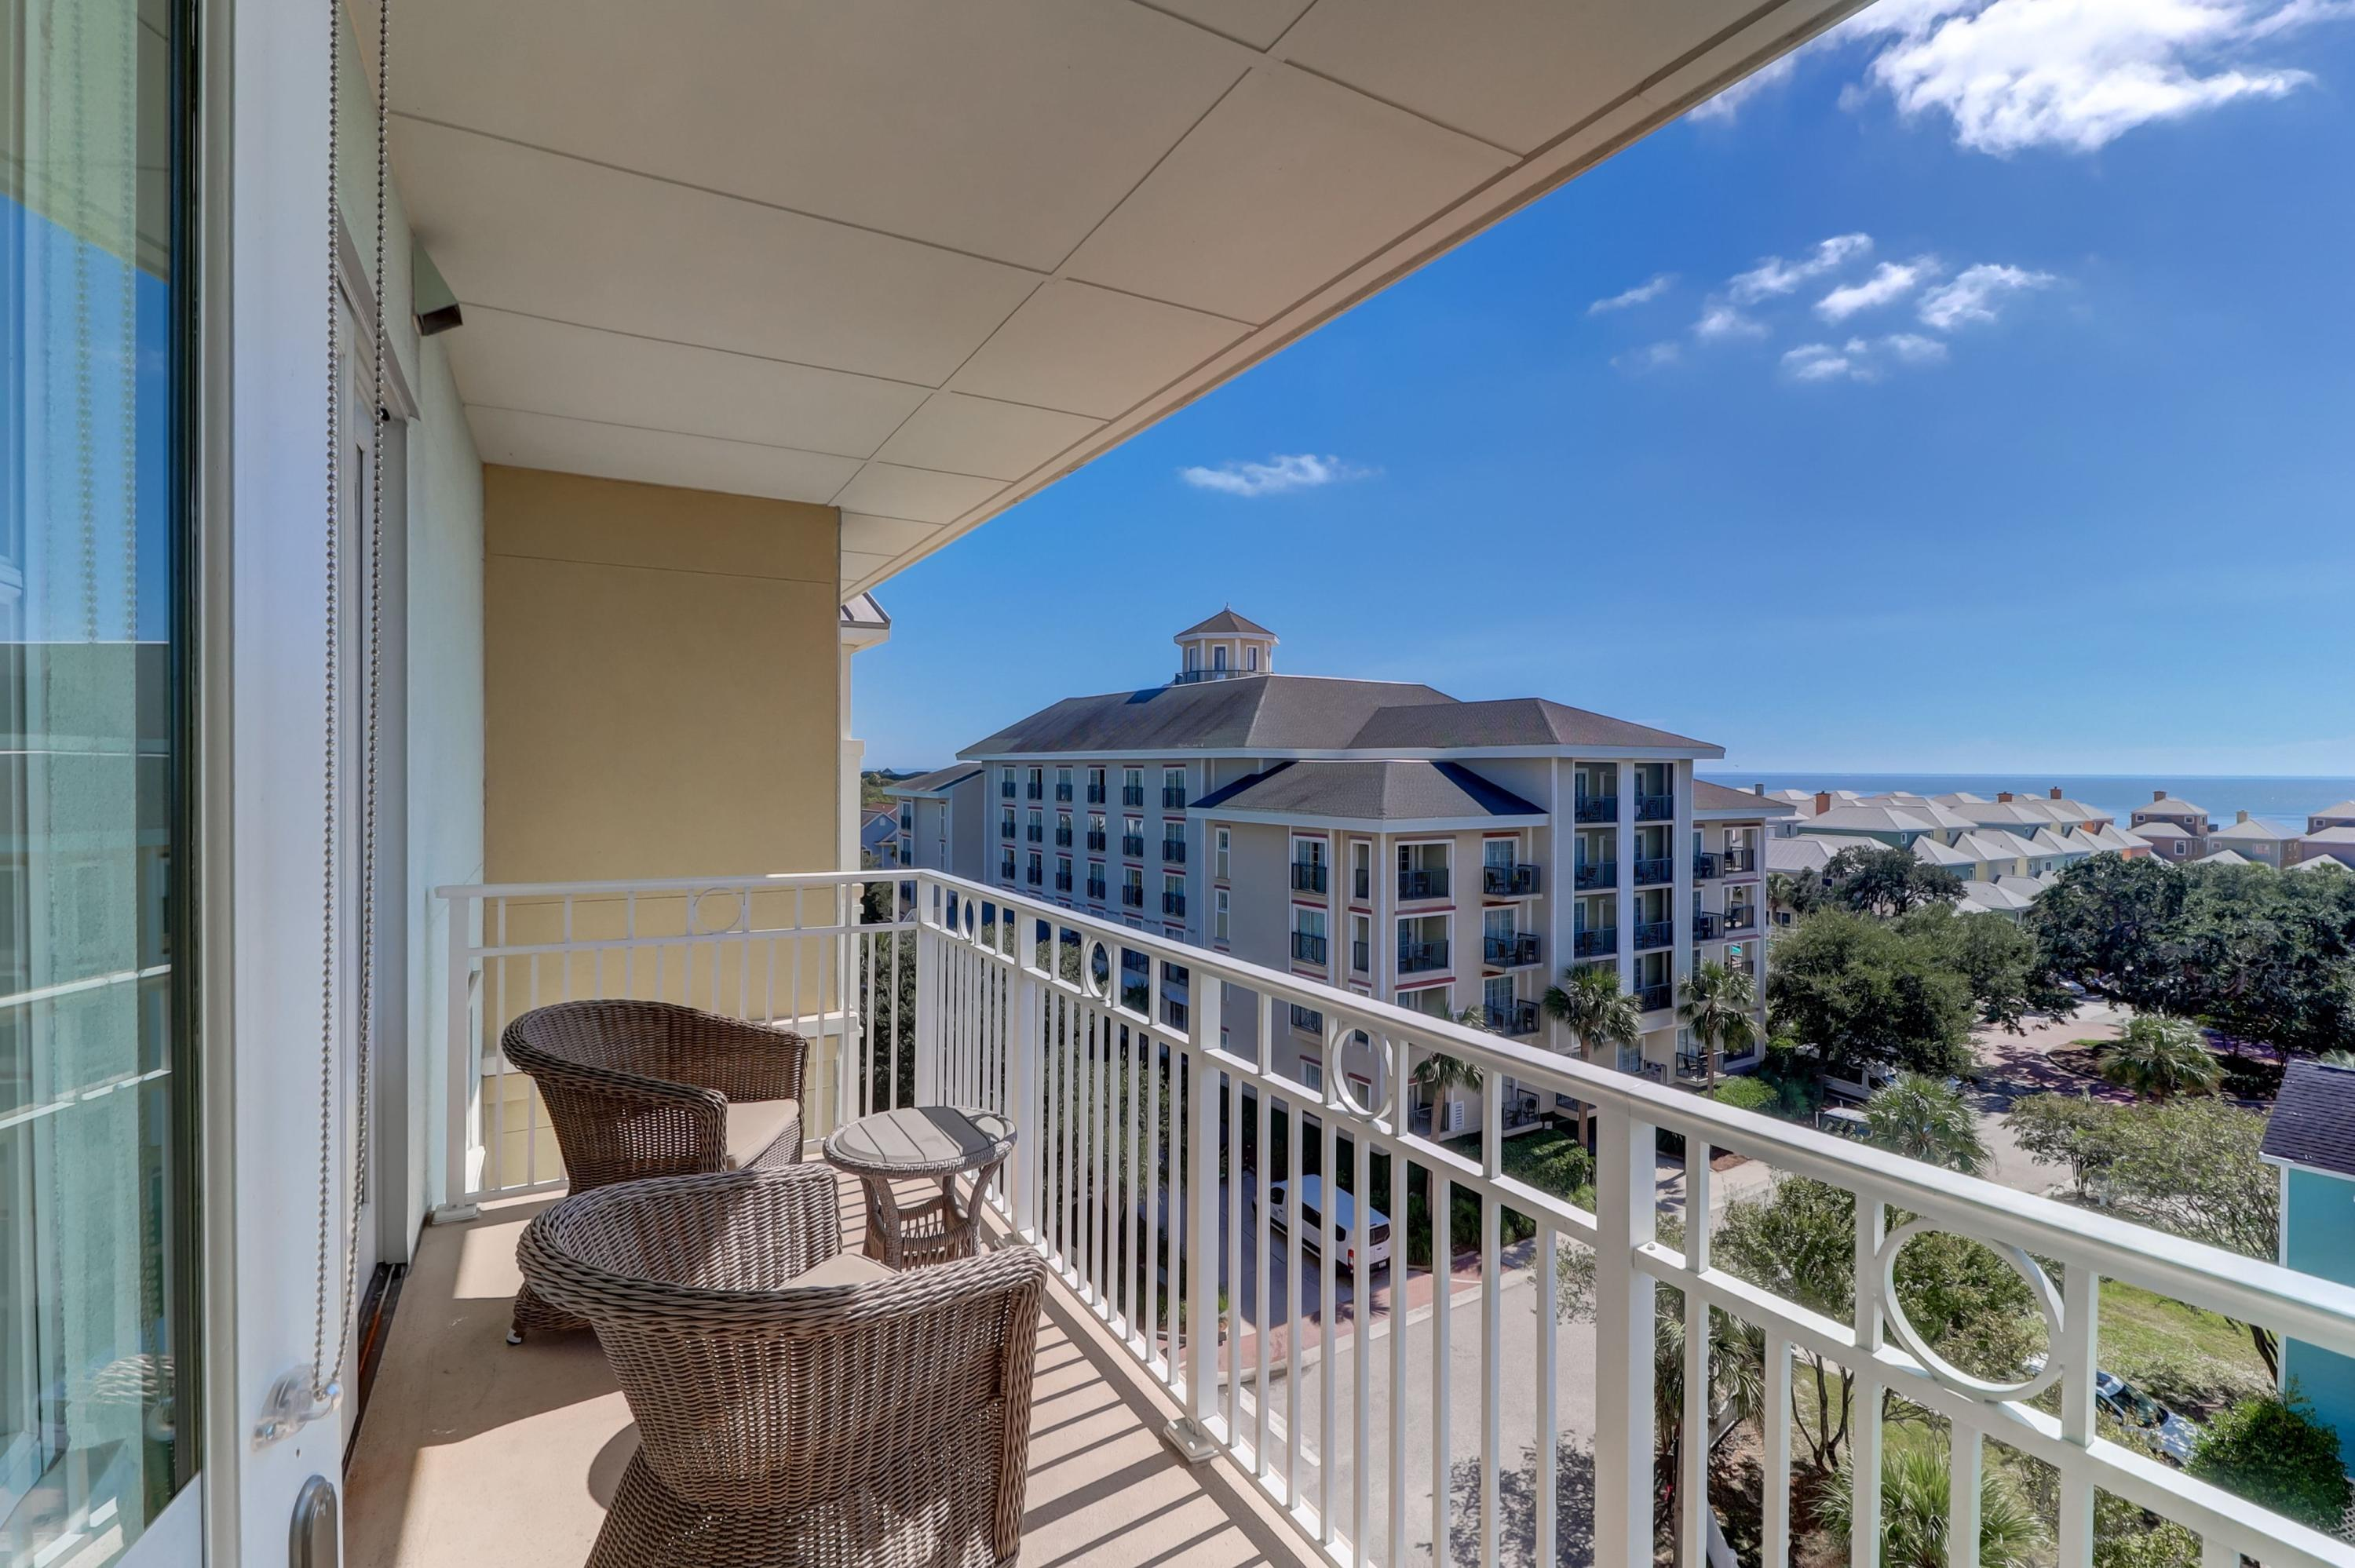 Wild Dunes Resort Homes For Sale - 5802 Palmetto, Isle of Palms, SC - 2